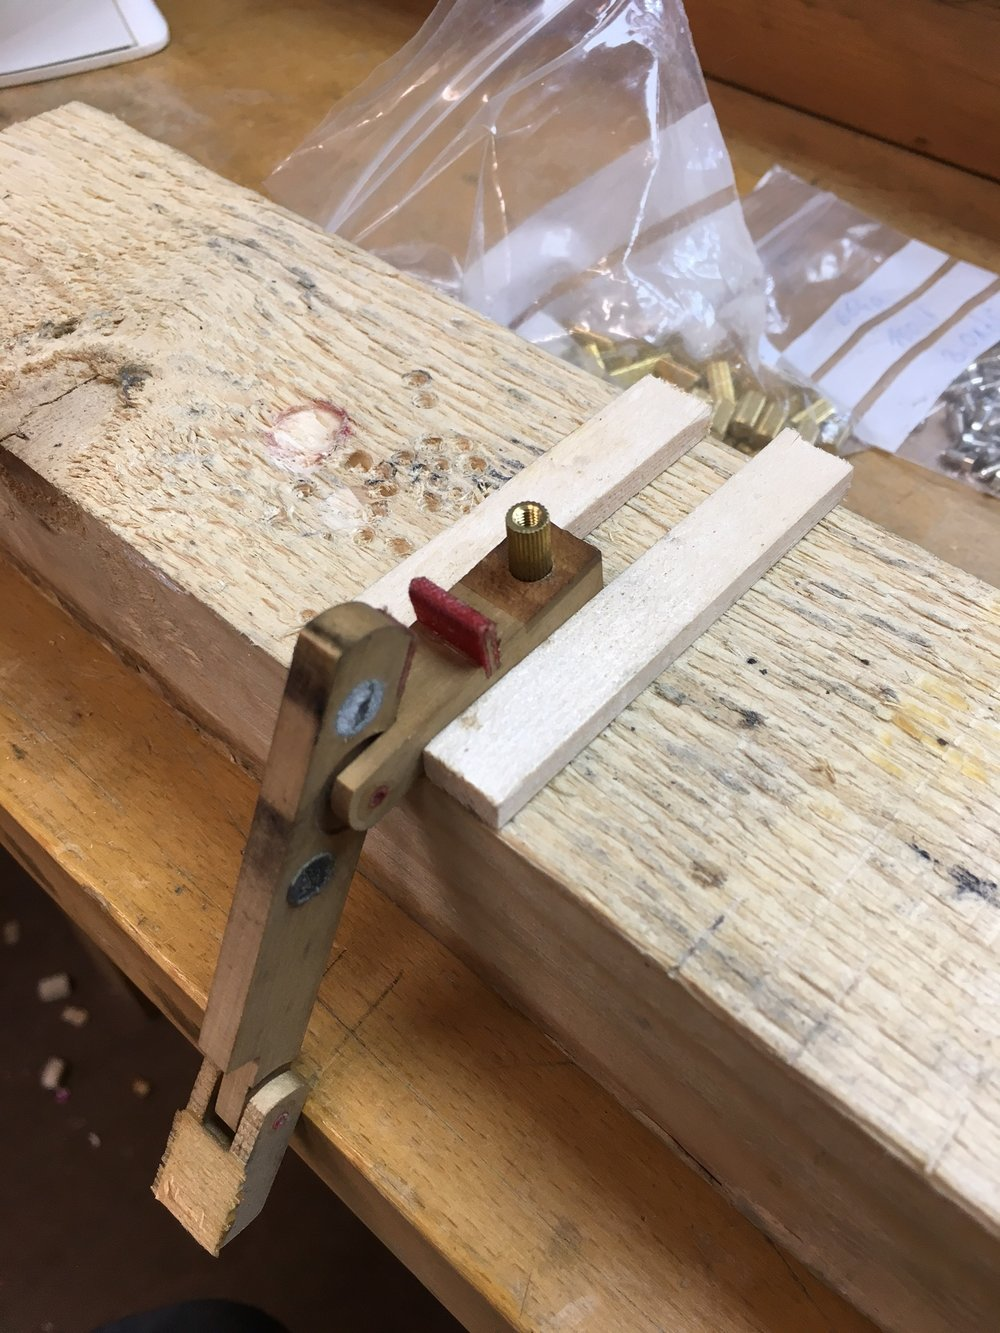 The damper levers are being converted to the modern Steinway design by having inserts fitted; a fiddly job but worth doing!